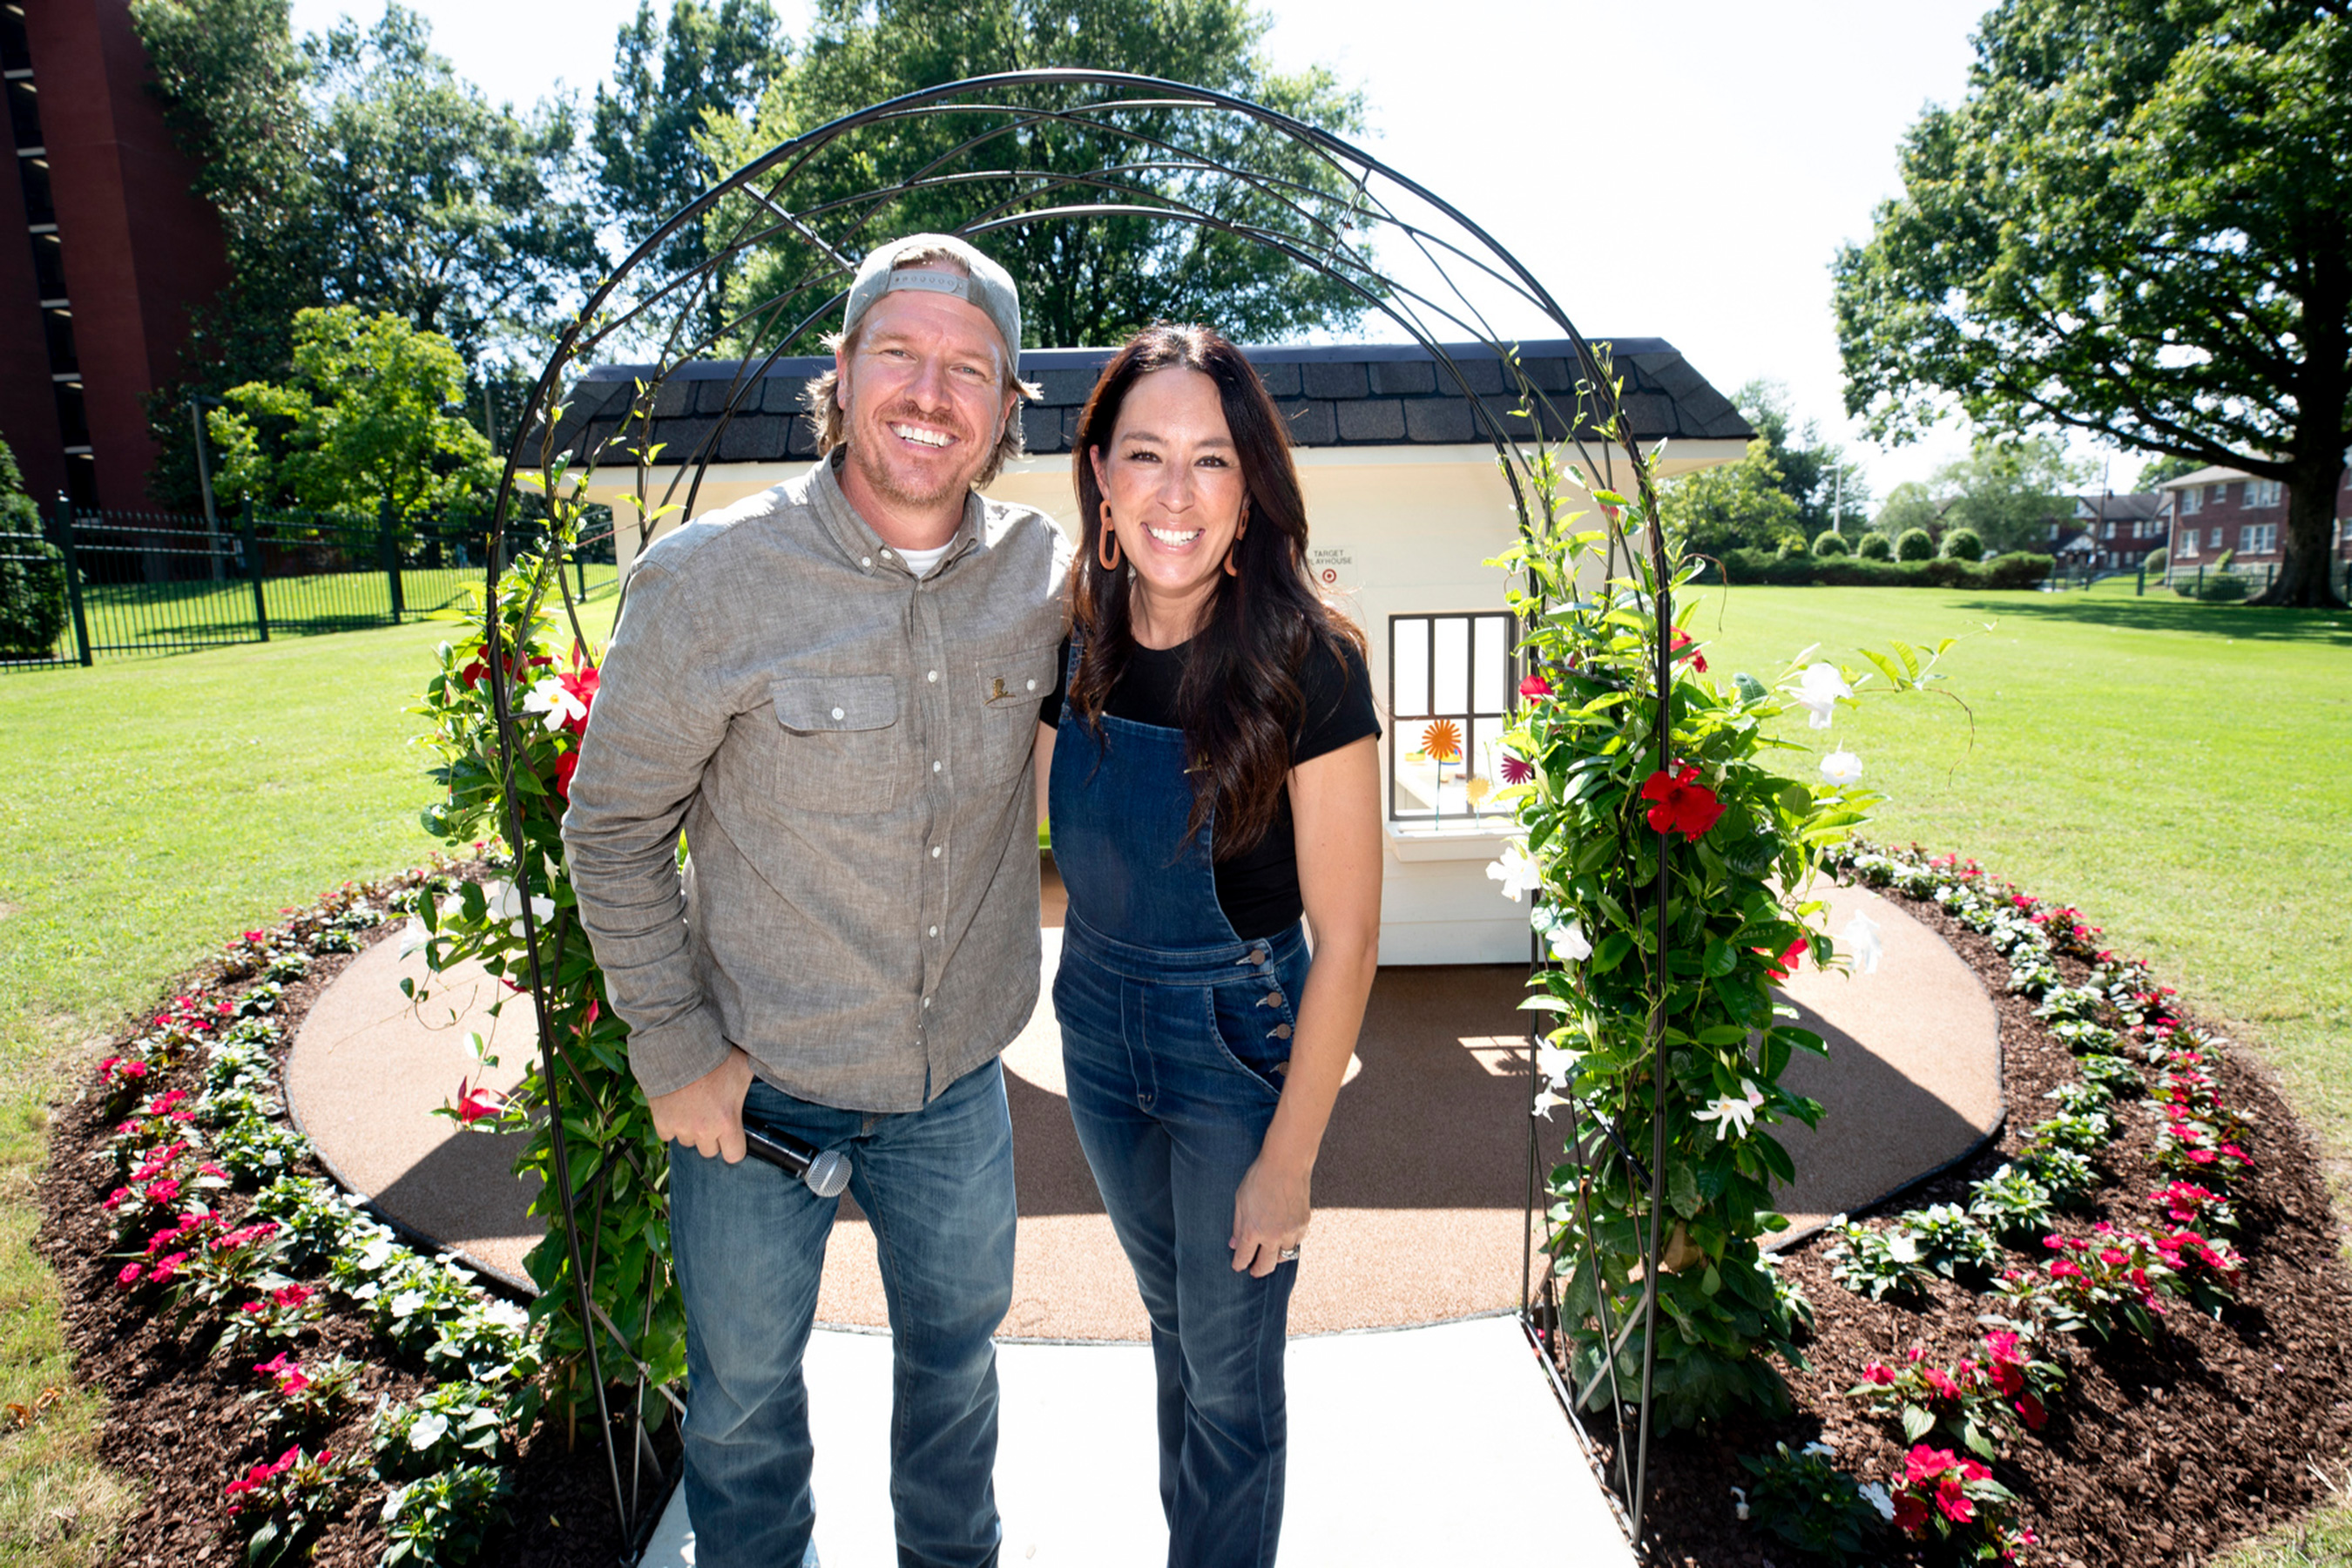 Chip and Joanna Gaines at the St. Jude event